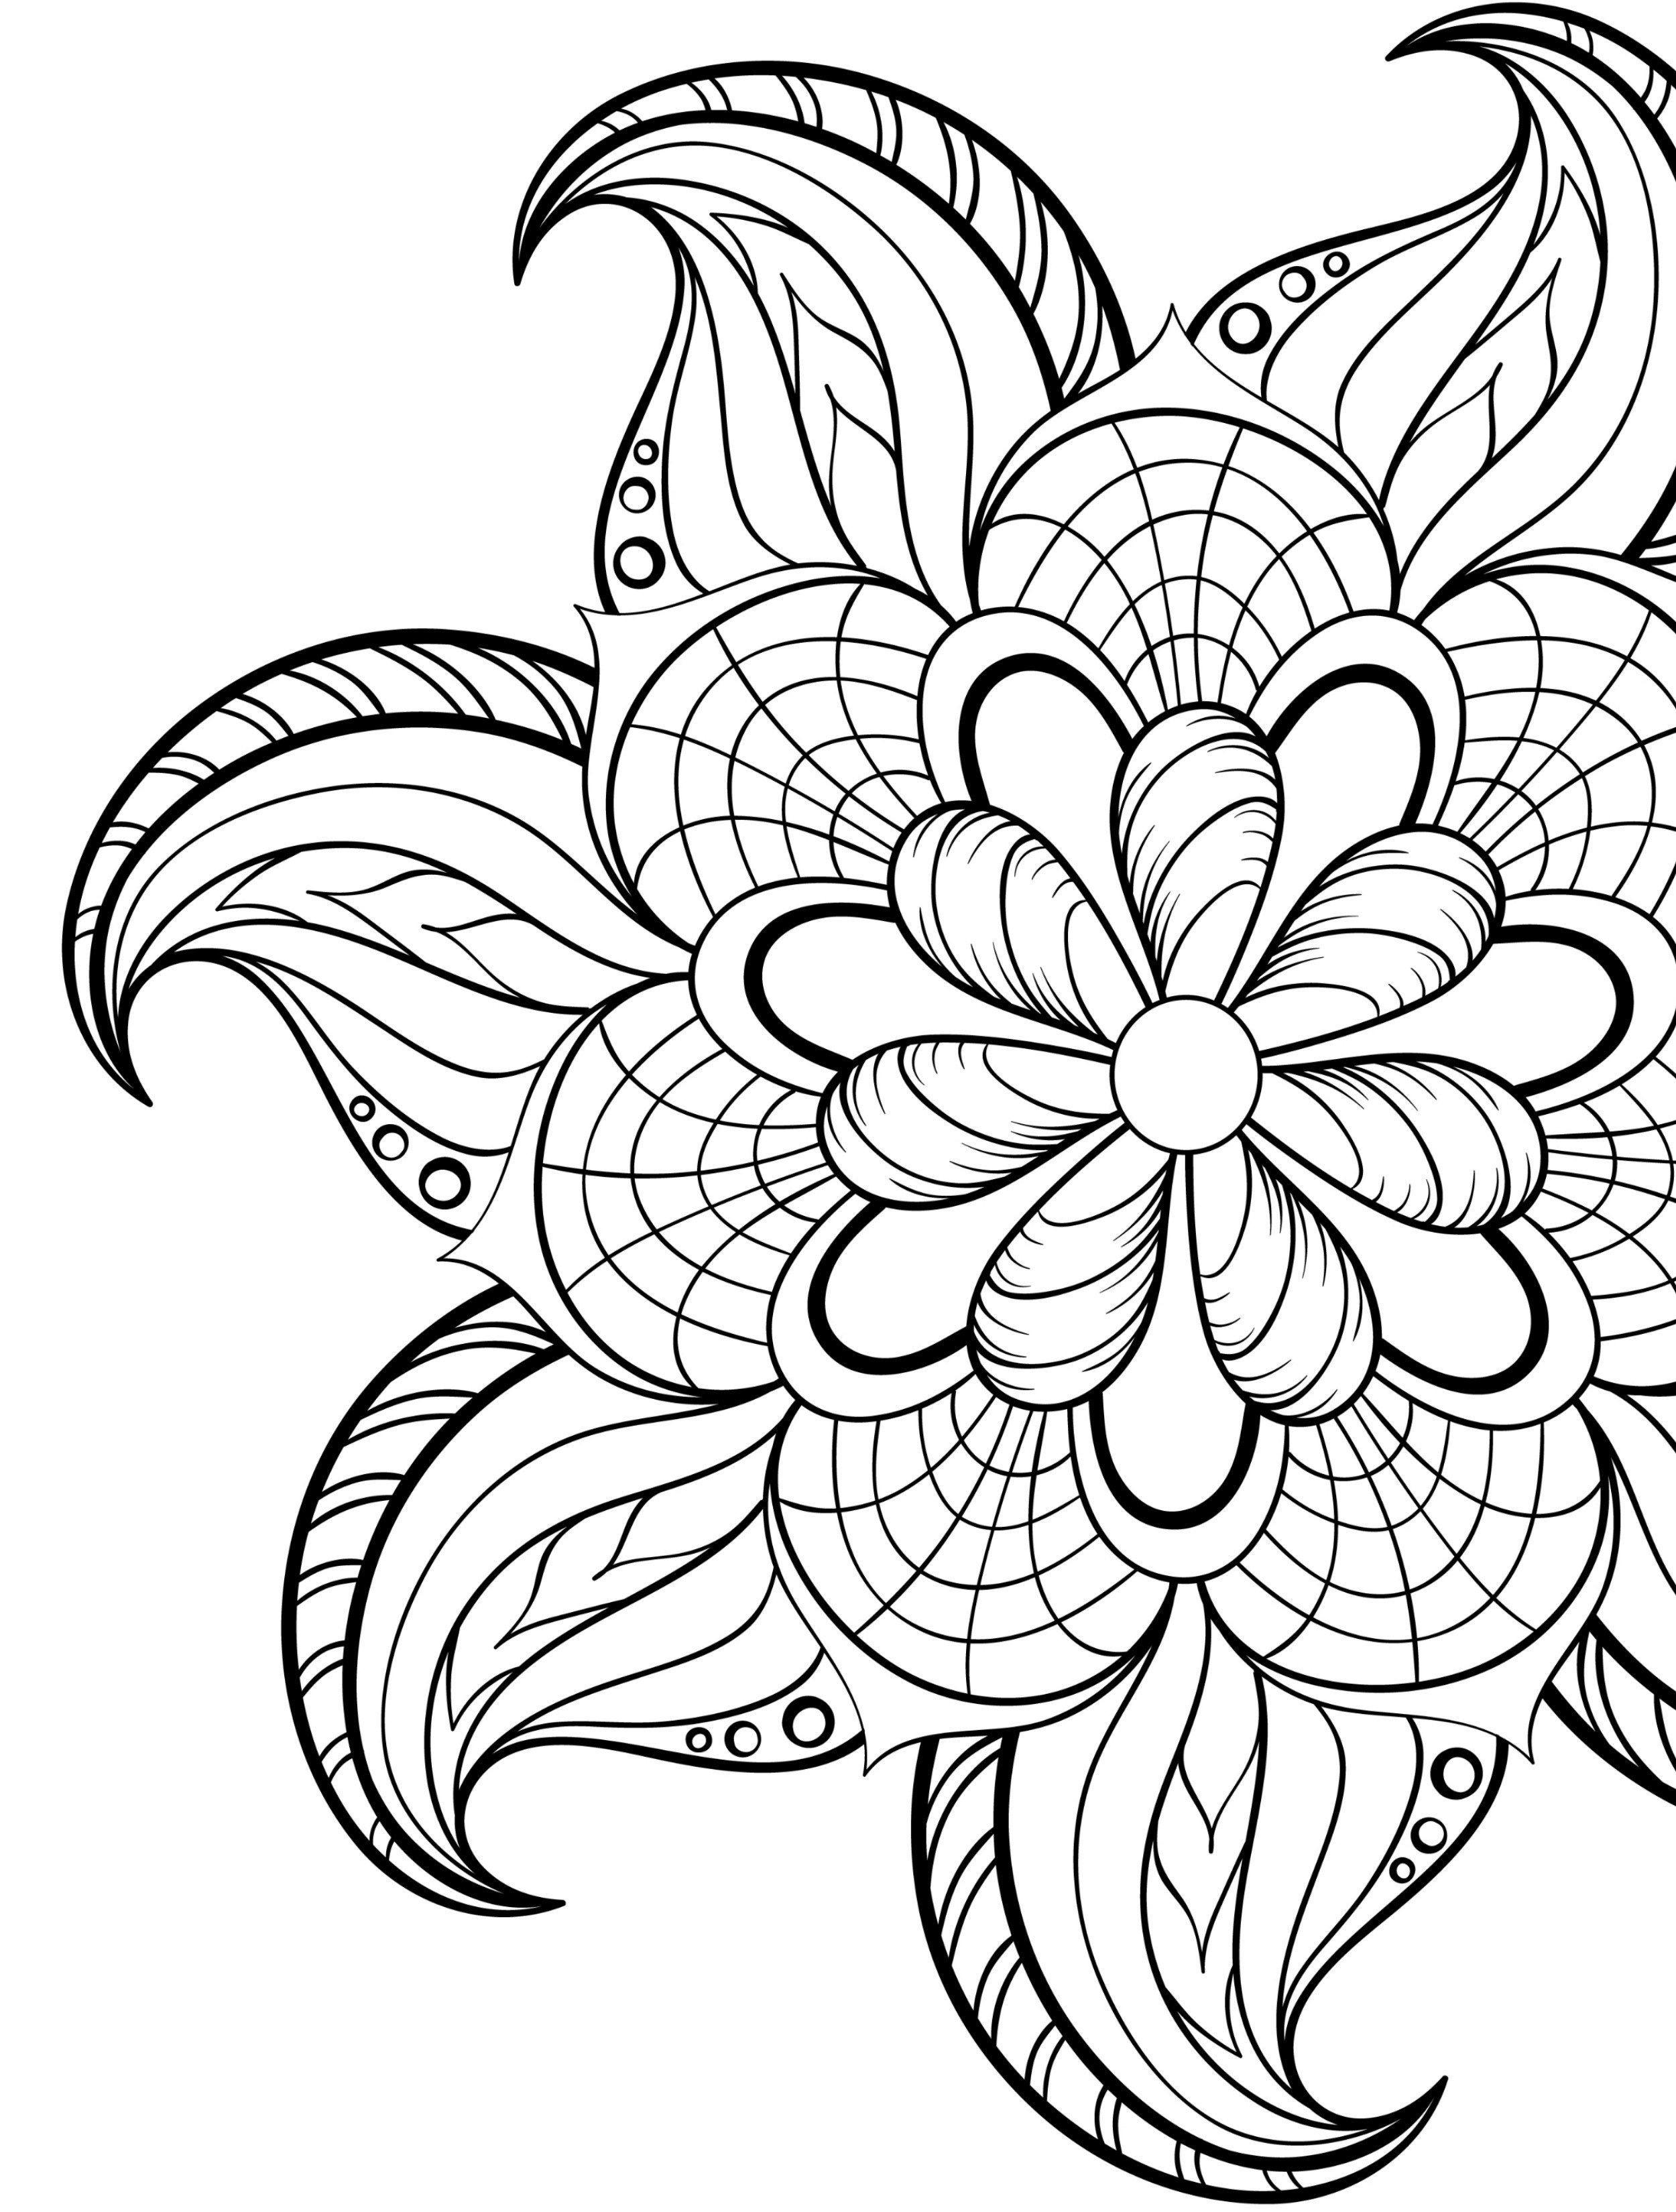 20 gorgeous free printable adult coloring pages - Coloring Pages Abstract Printable